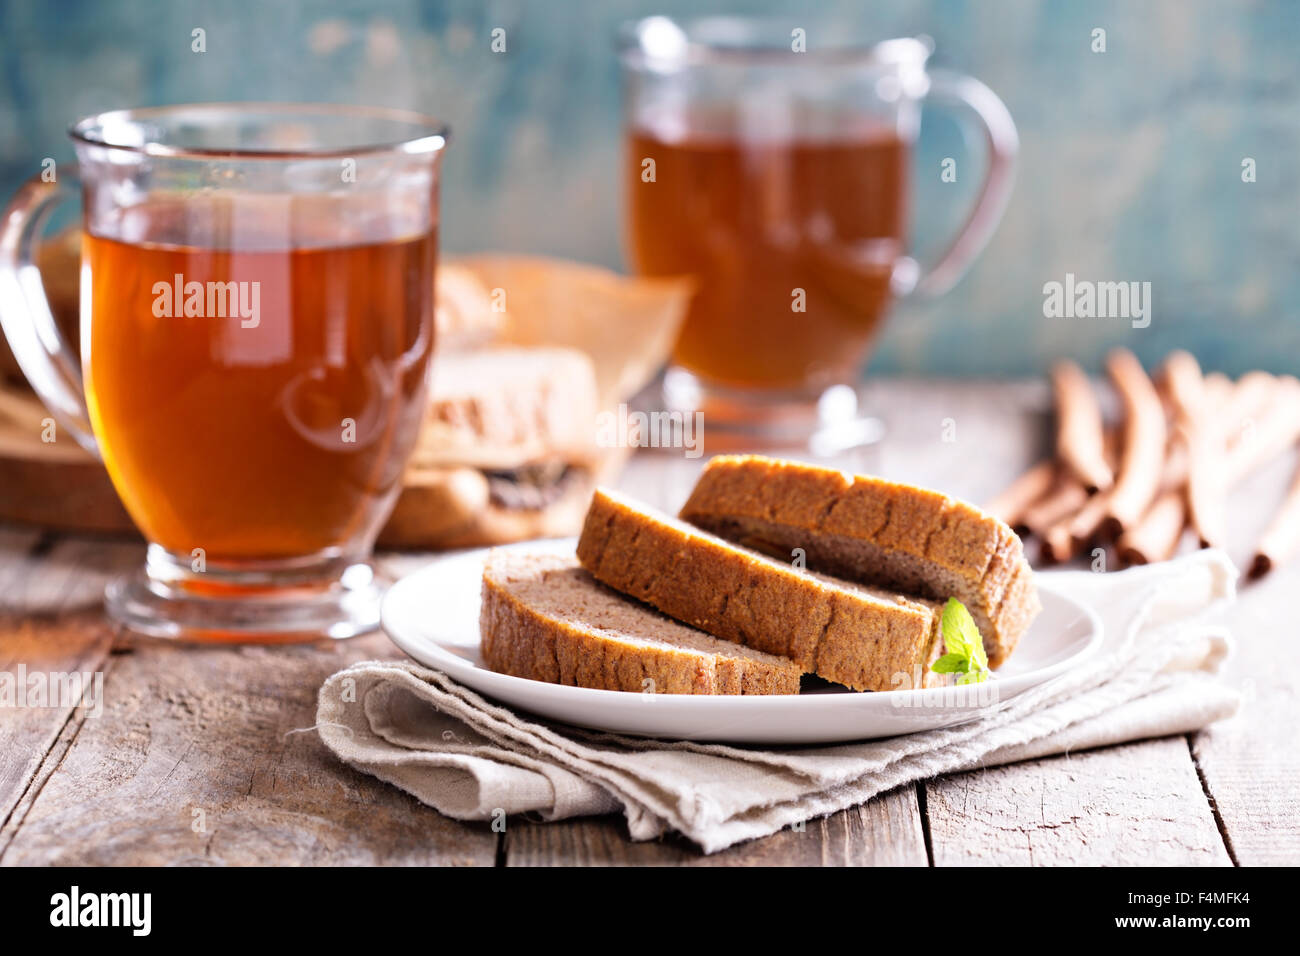 Gingerbread warm and spicy loaf cake with hot tea - Stock Image